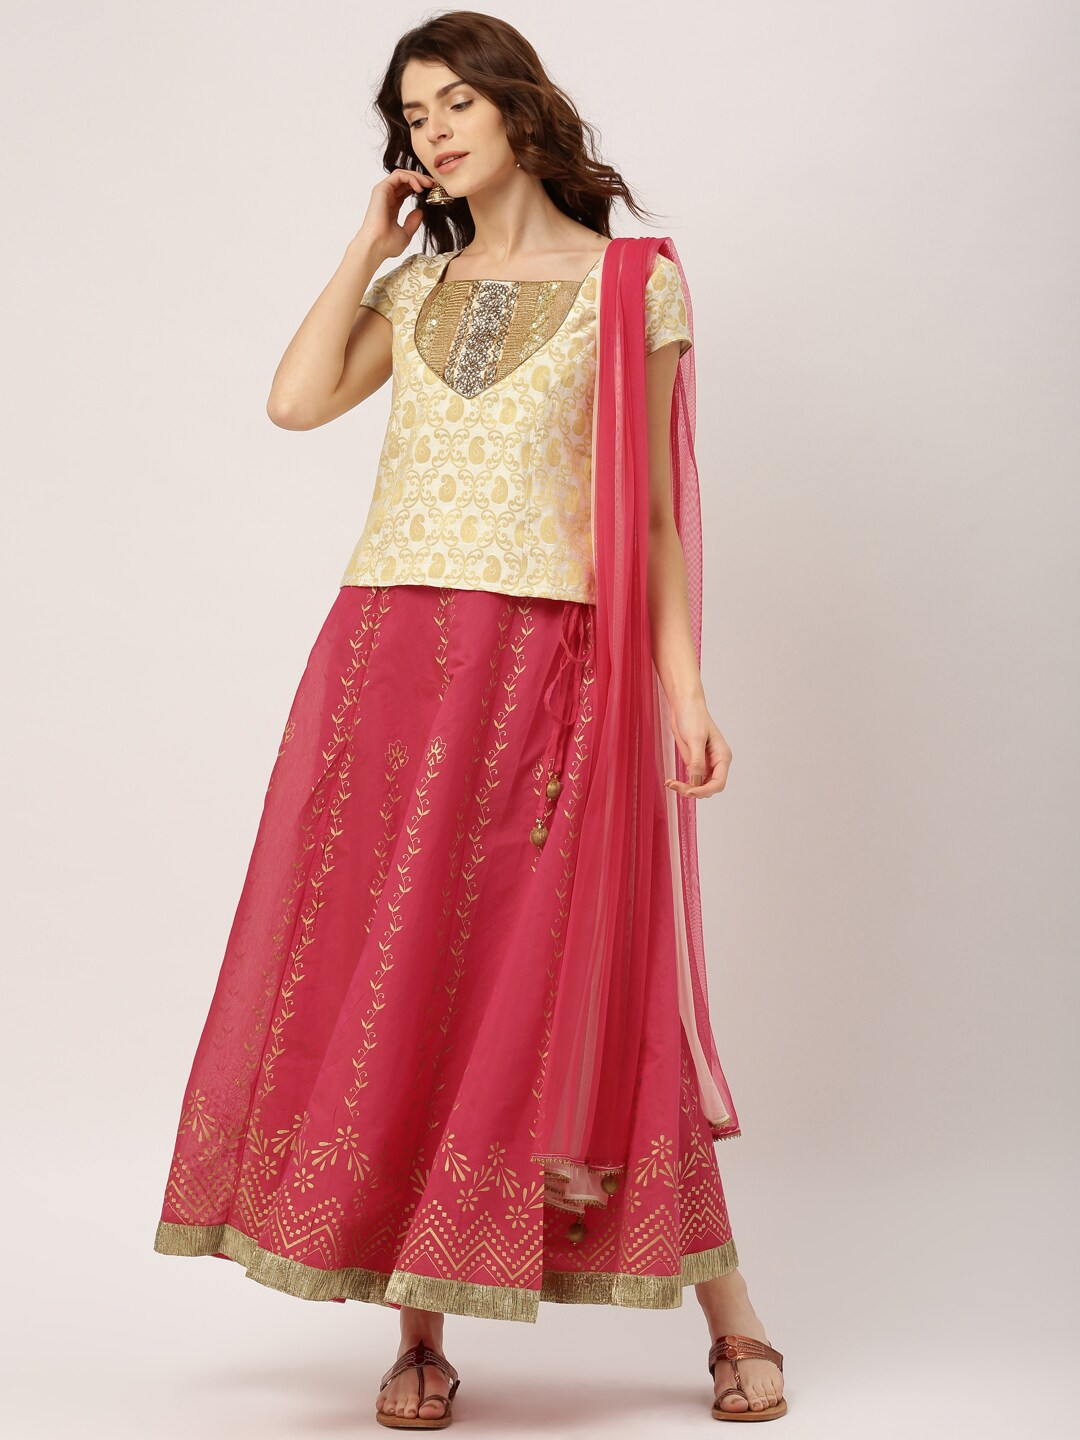 IMARA Off-White & Pink Lehenga Choli with Dupatta image